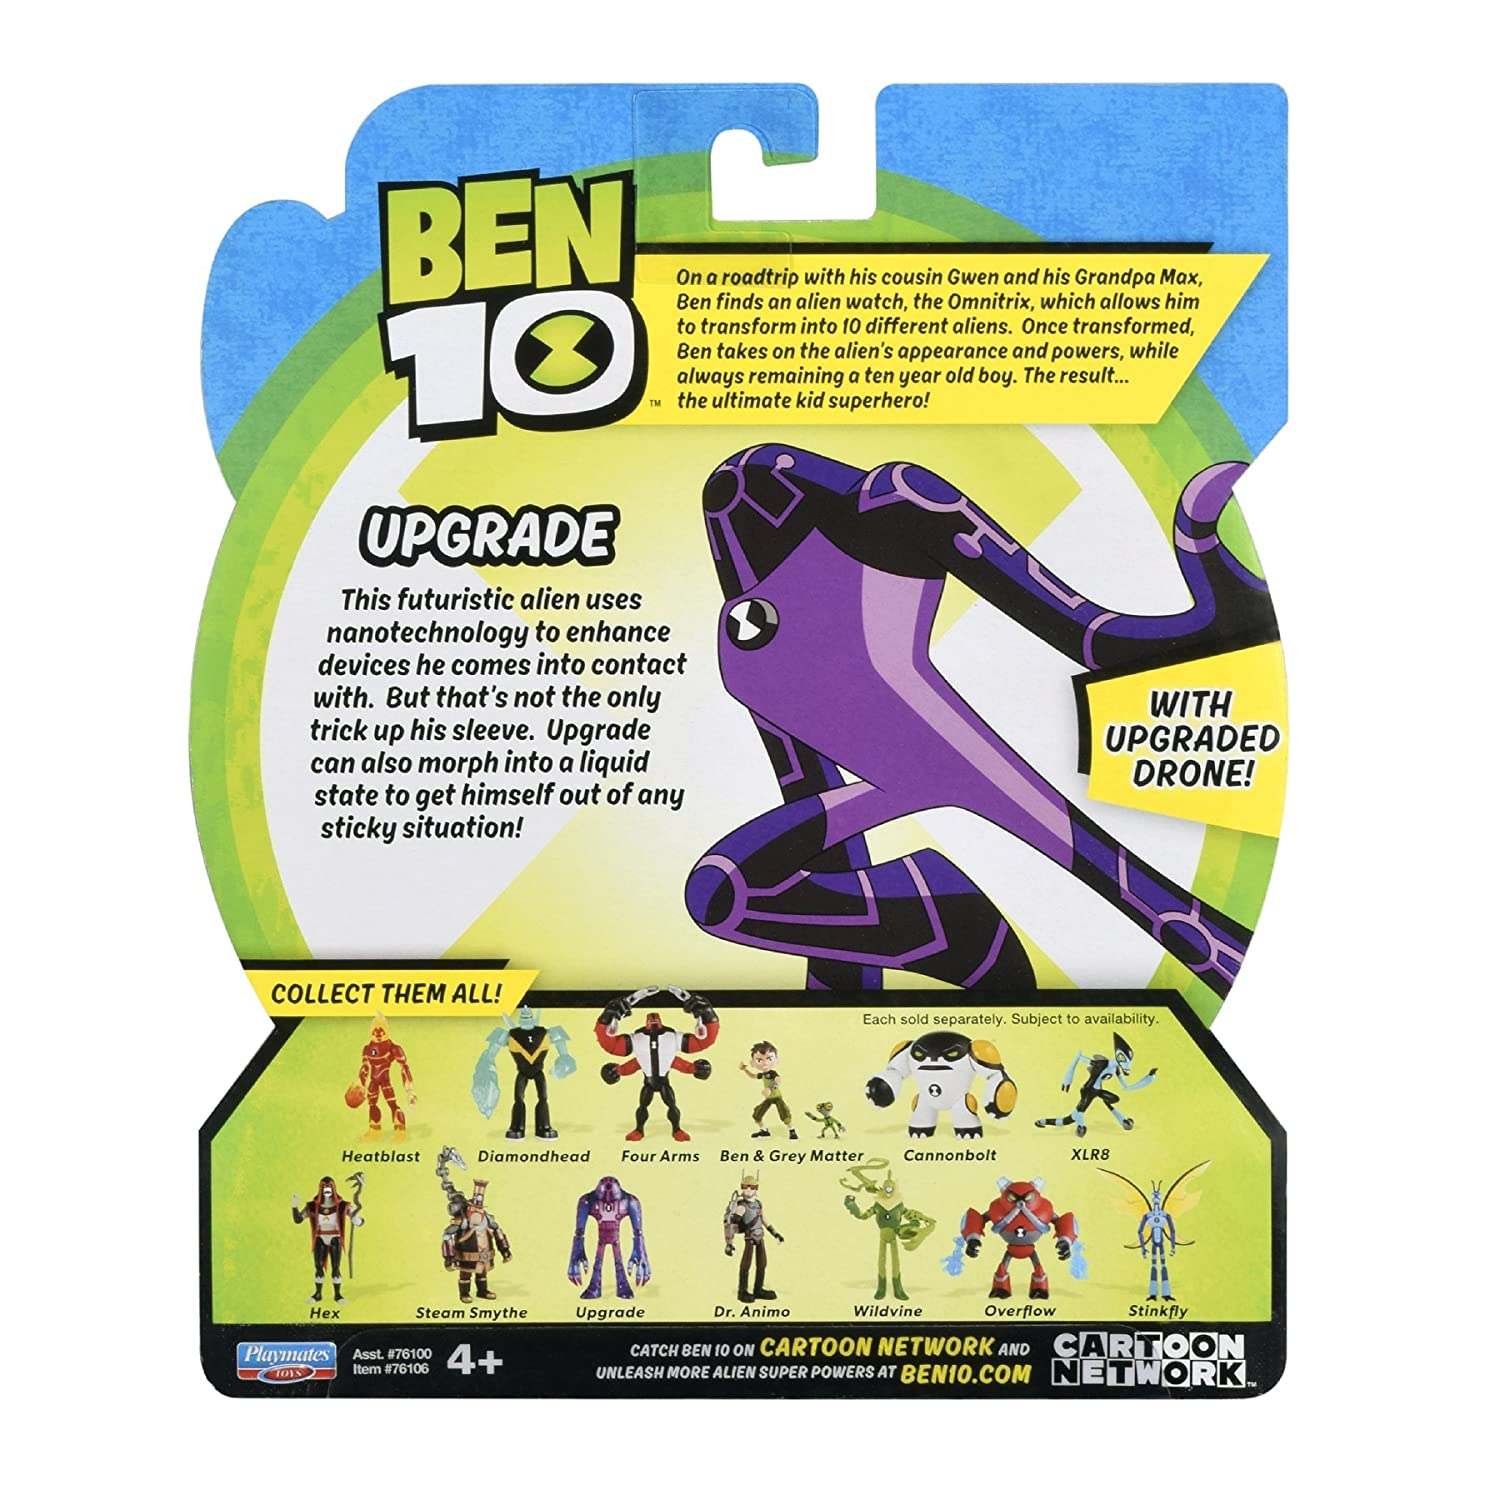 Toys 76106 Ben 10 Upgrade Action Figure Playmates